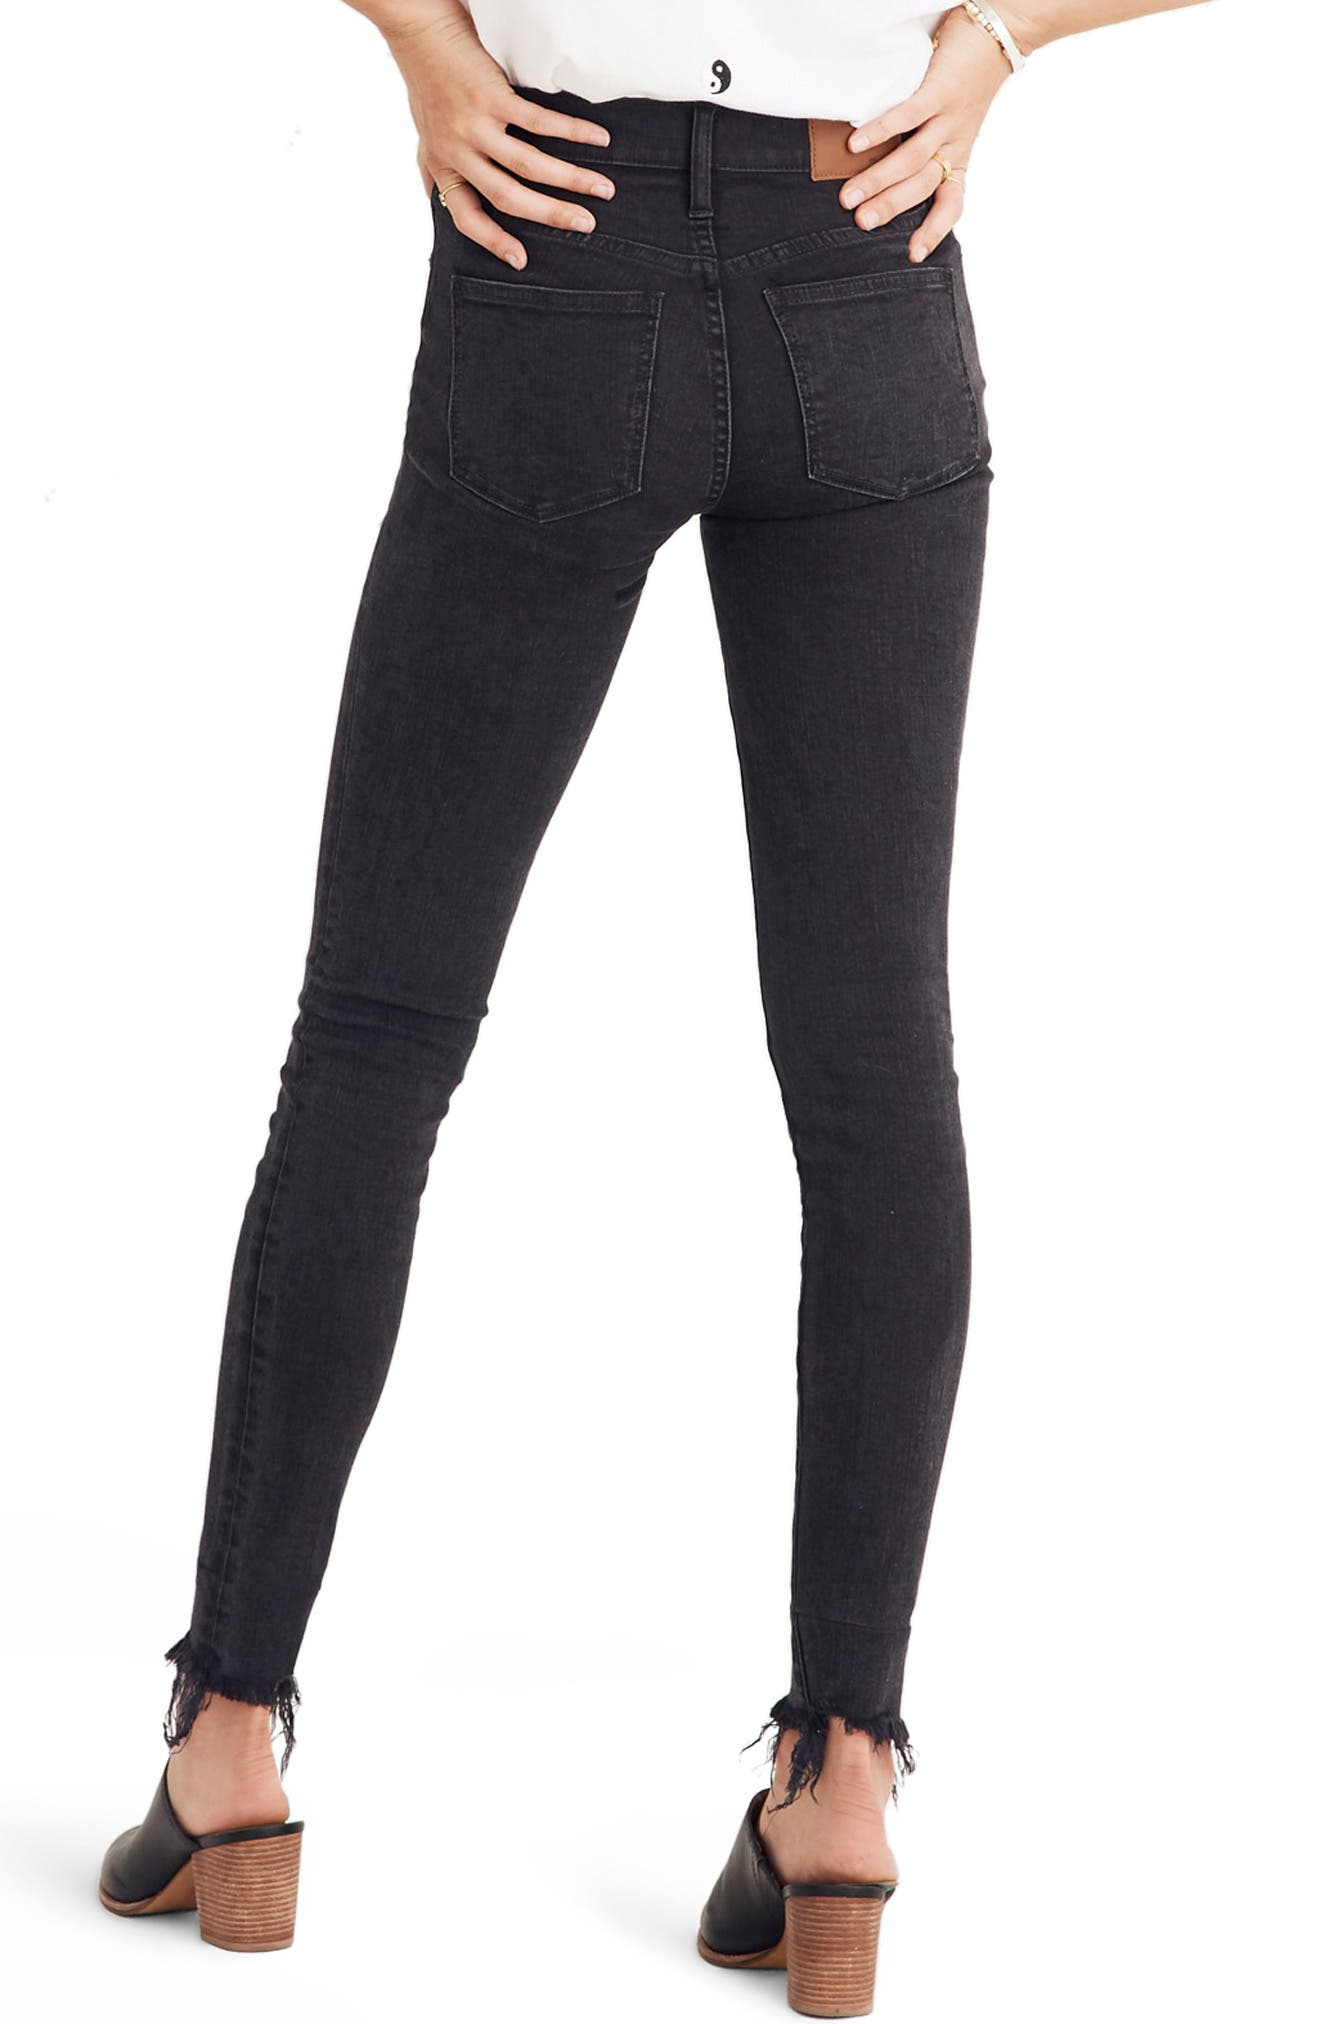 9-Inch Button High Waist Ankle Skinny Jeans,                             Alternate thumbnail 3, color,                             BERKELEY WASH